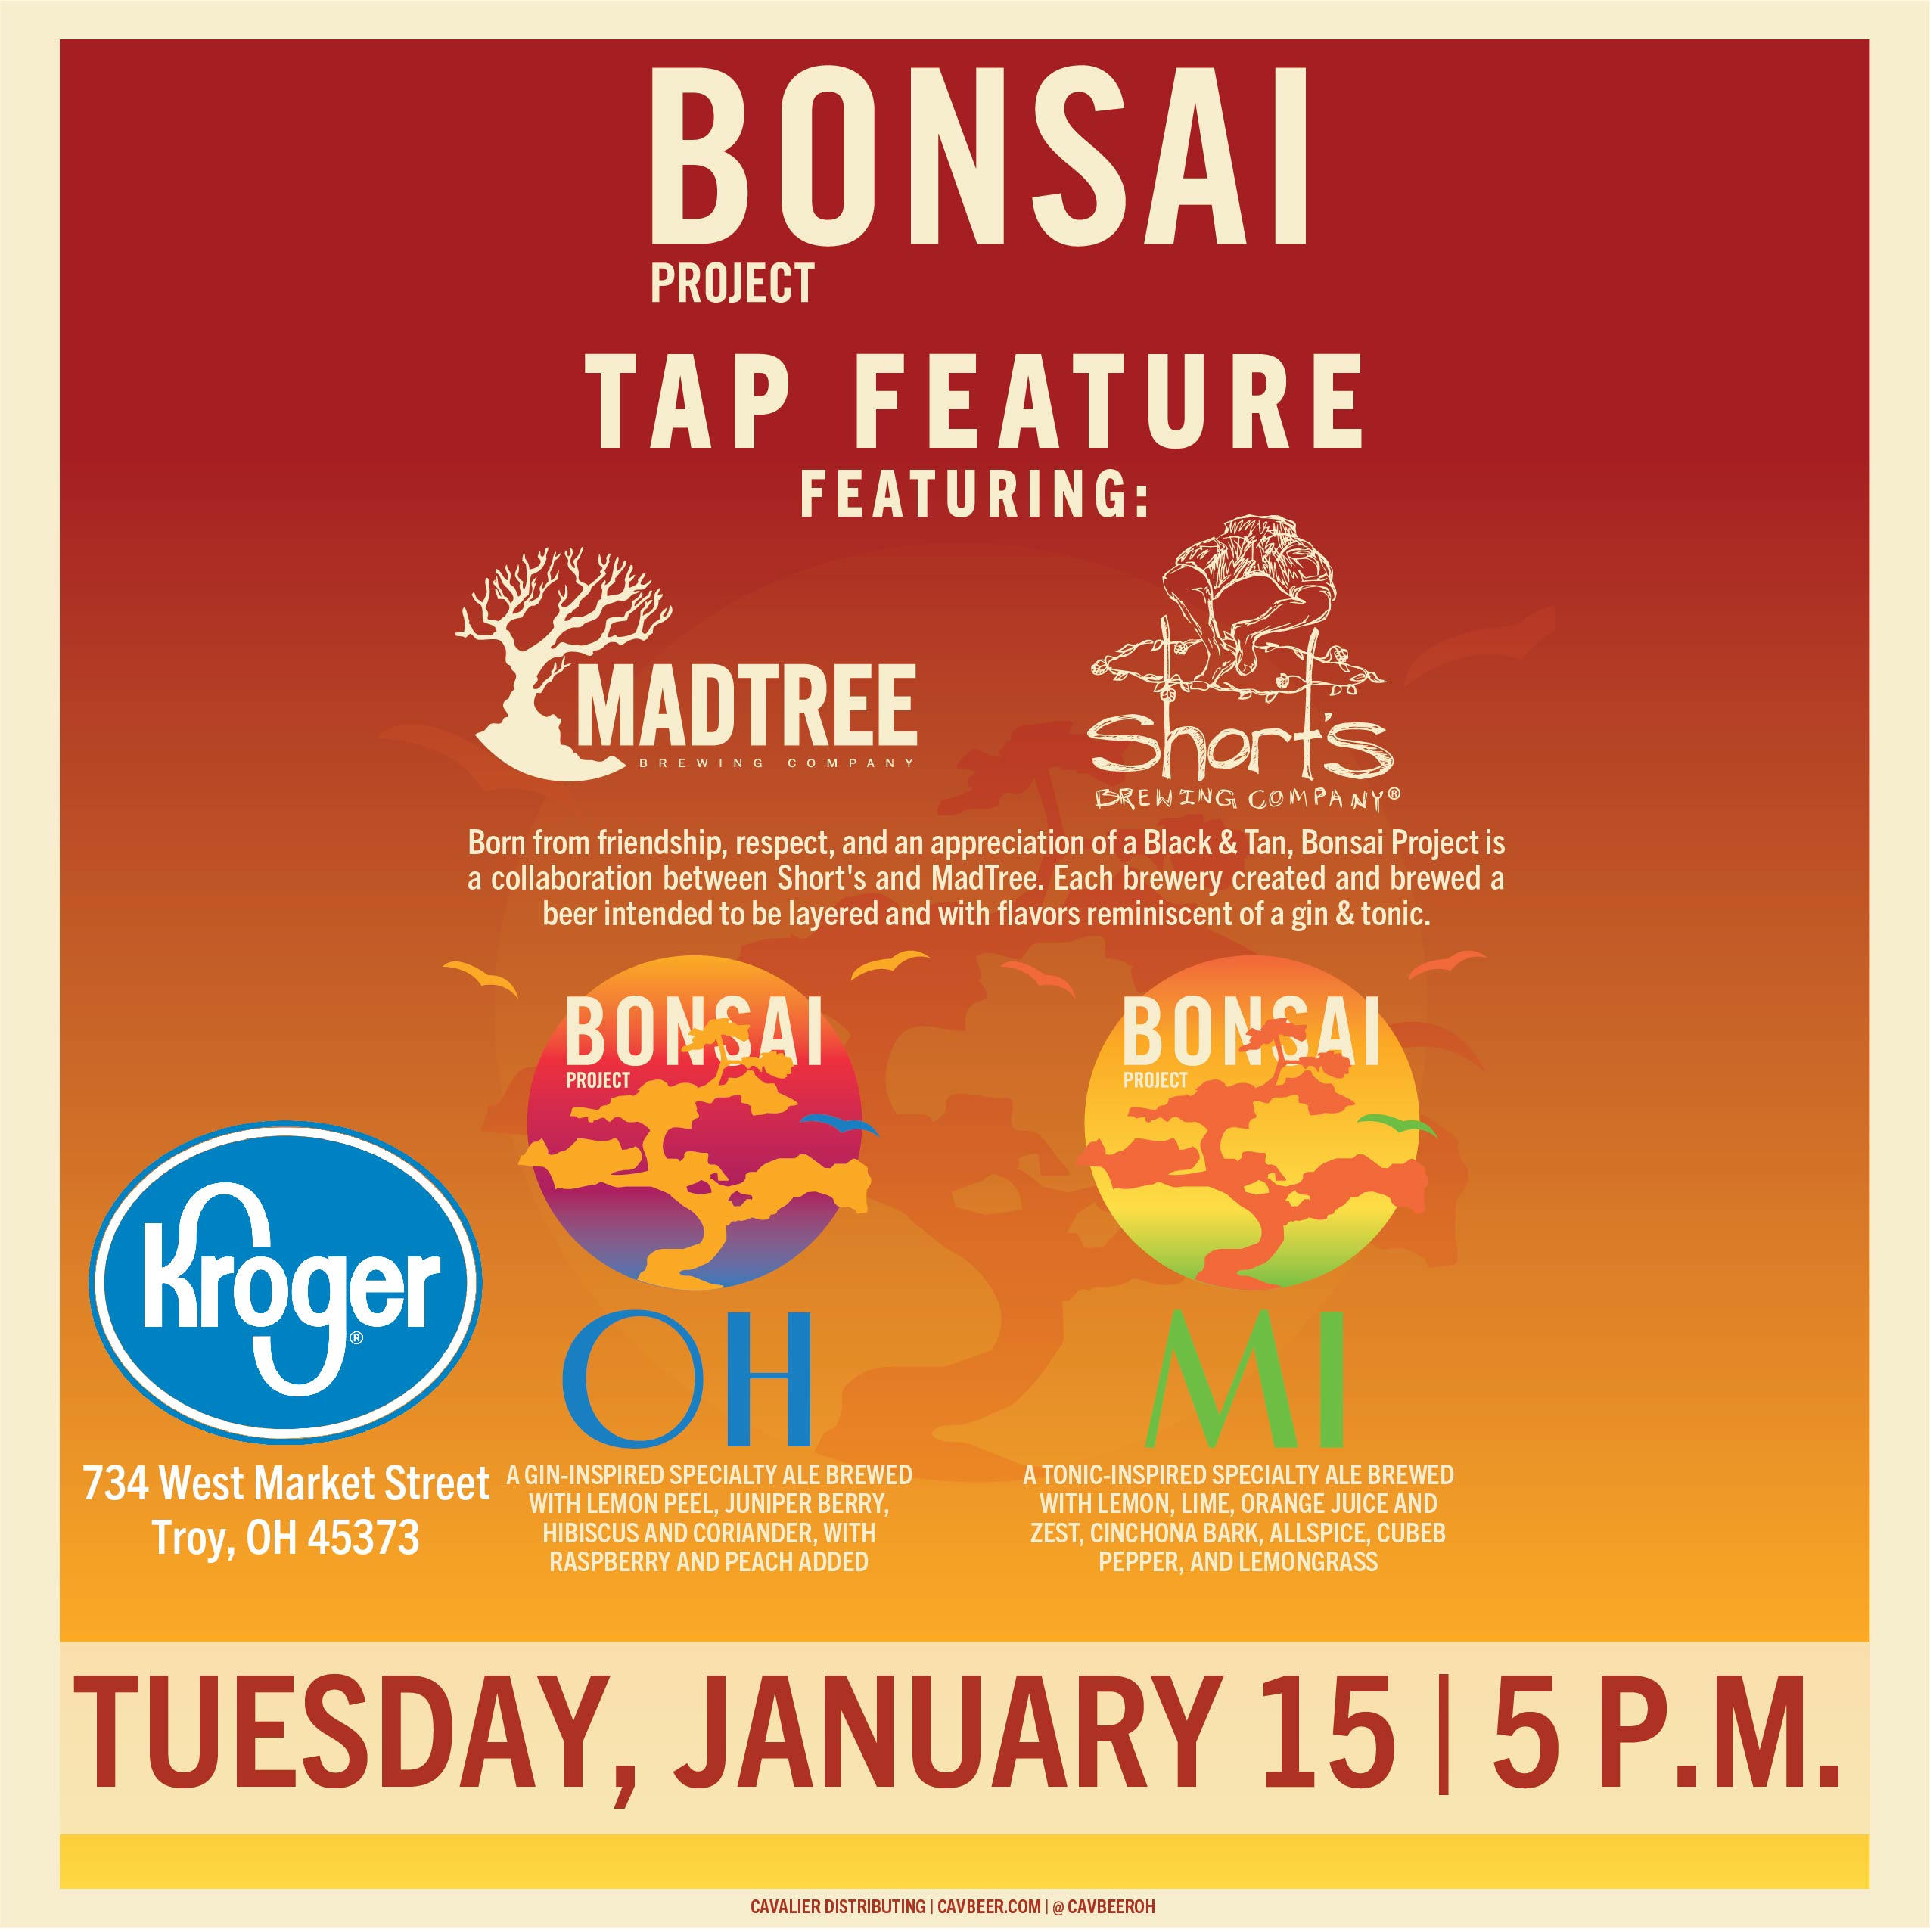 MadTree & Short's Bonsai Project Tap feature @ Kroger Troy, OH